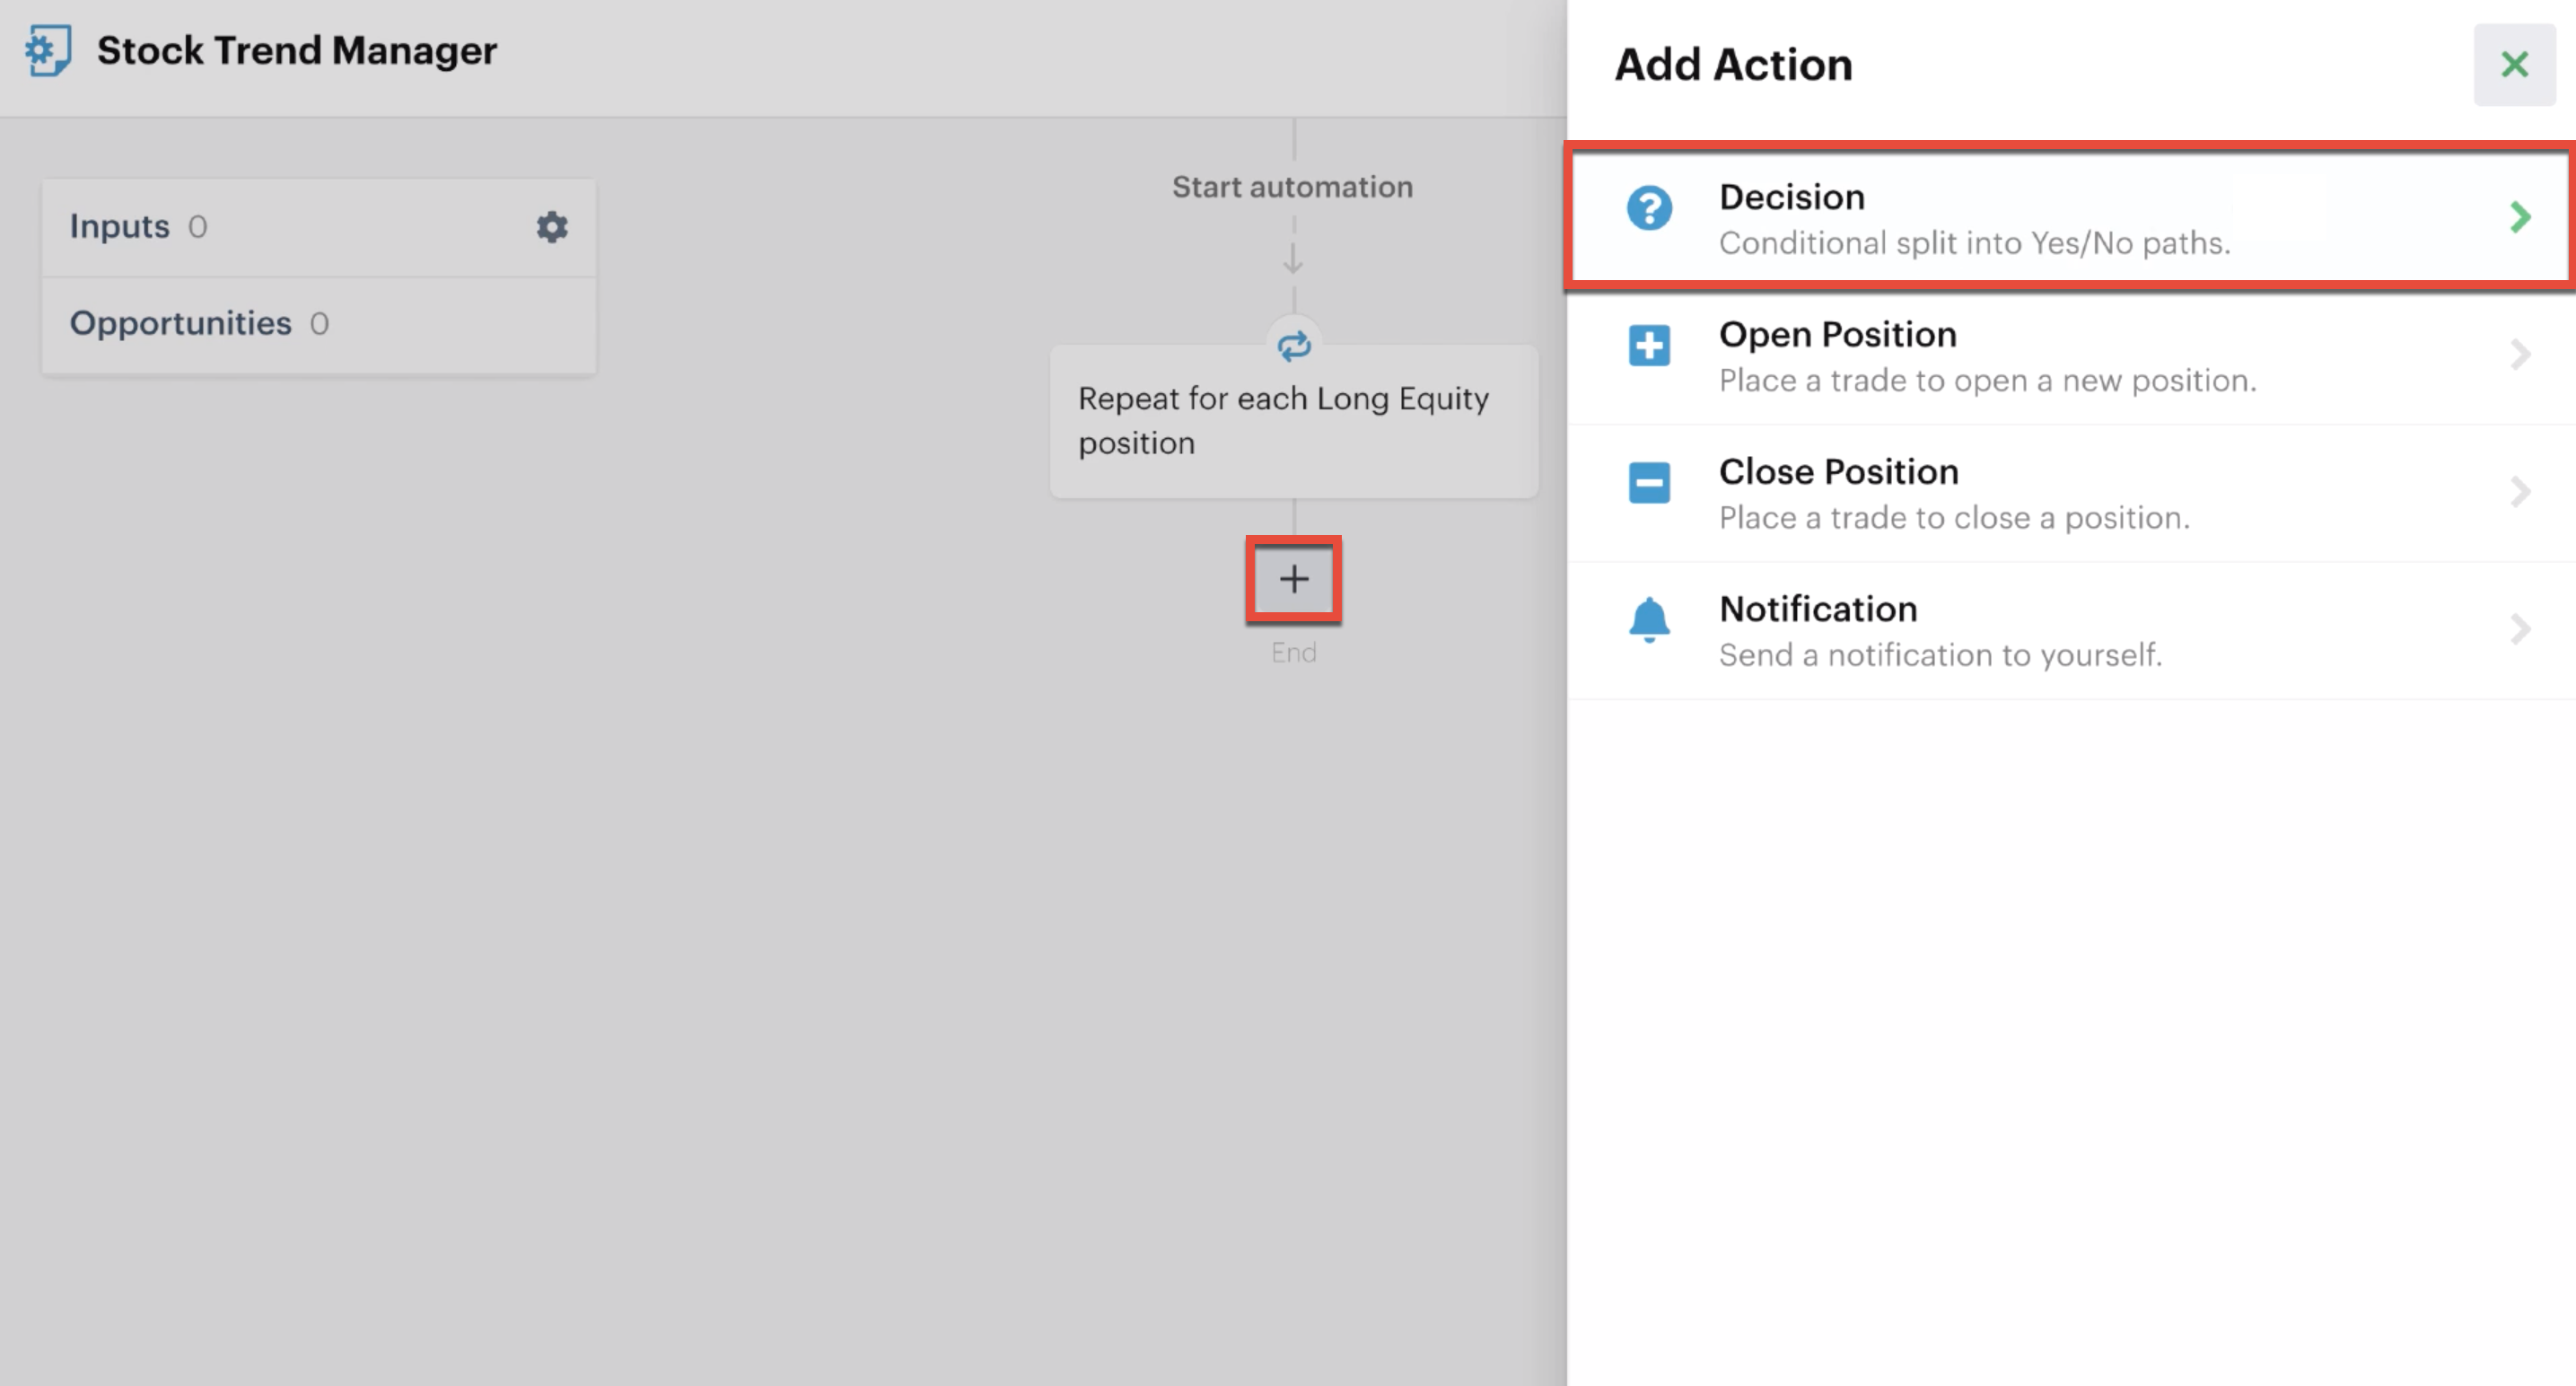 Adding a decision action to an automation